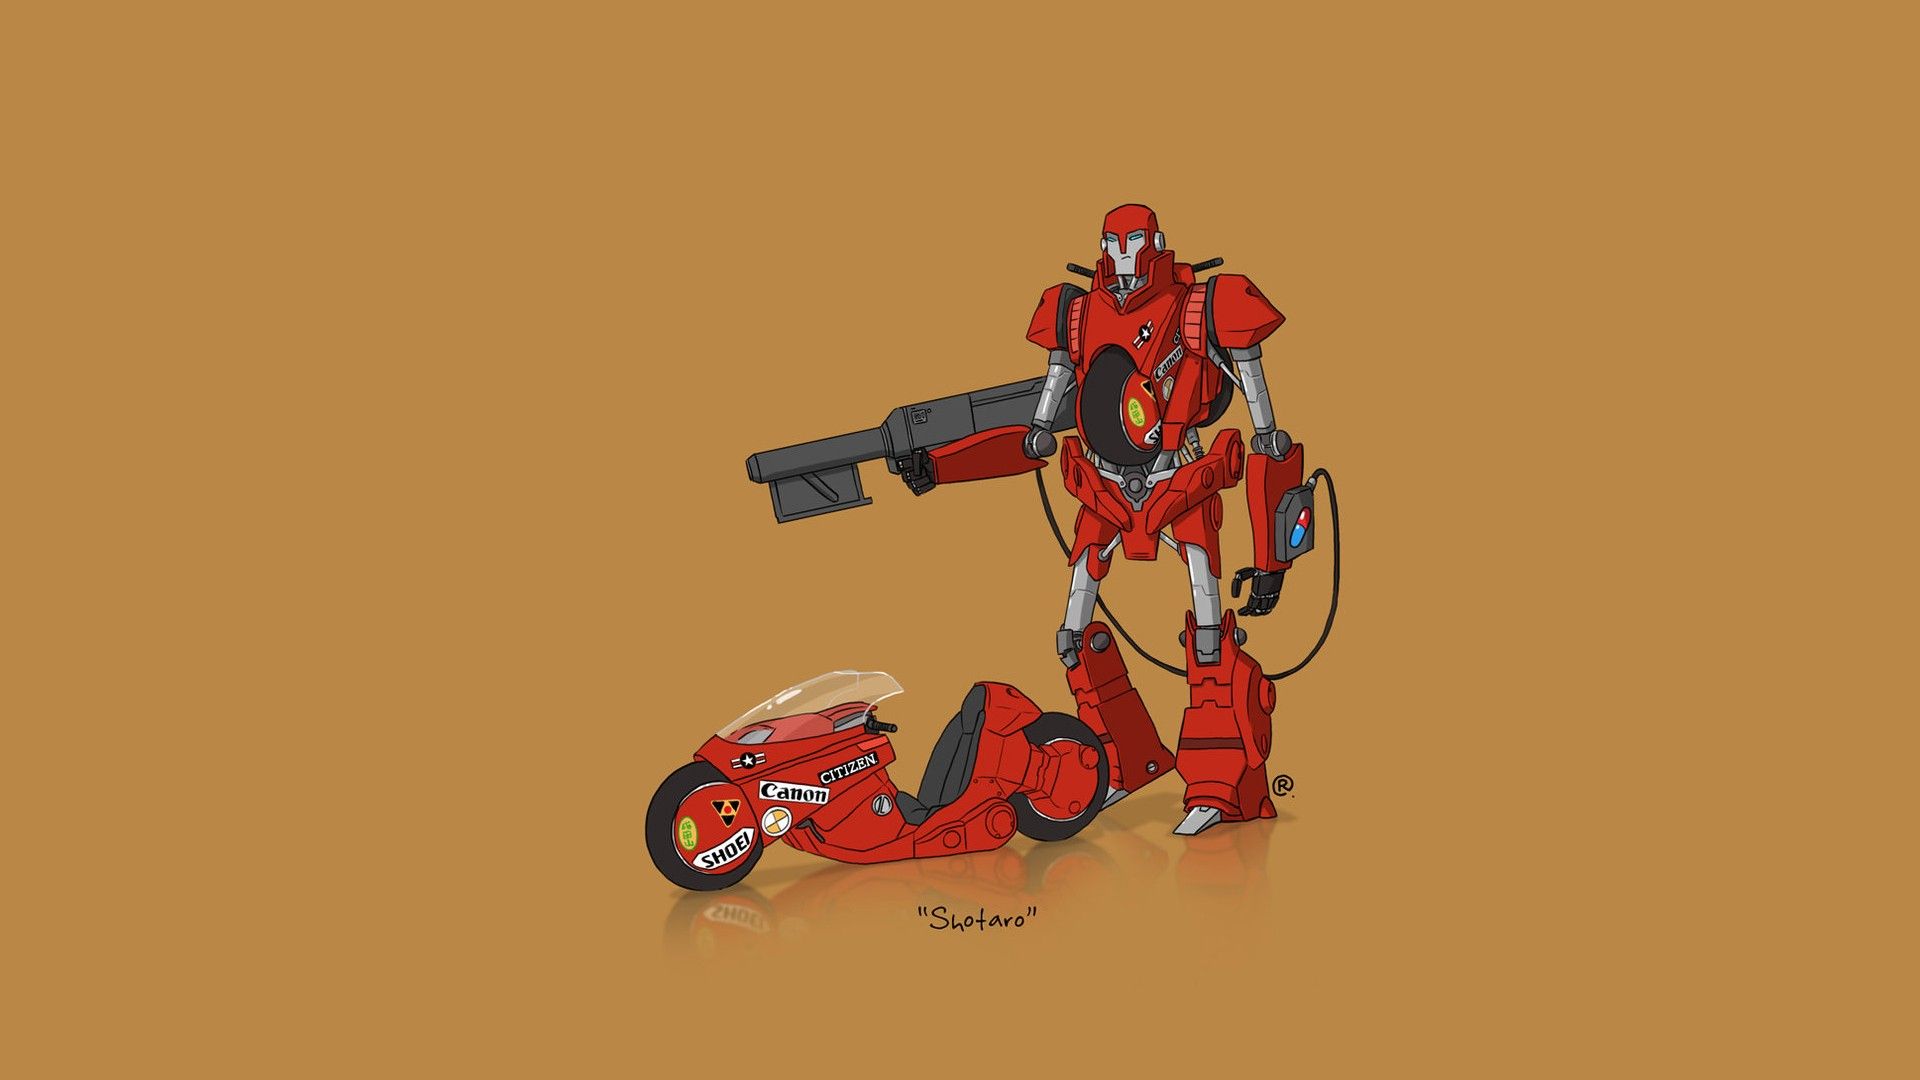 Car 5760x1080 Wallpaper Car Transformers Minimalism Akira Wallpapers Hd